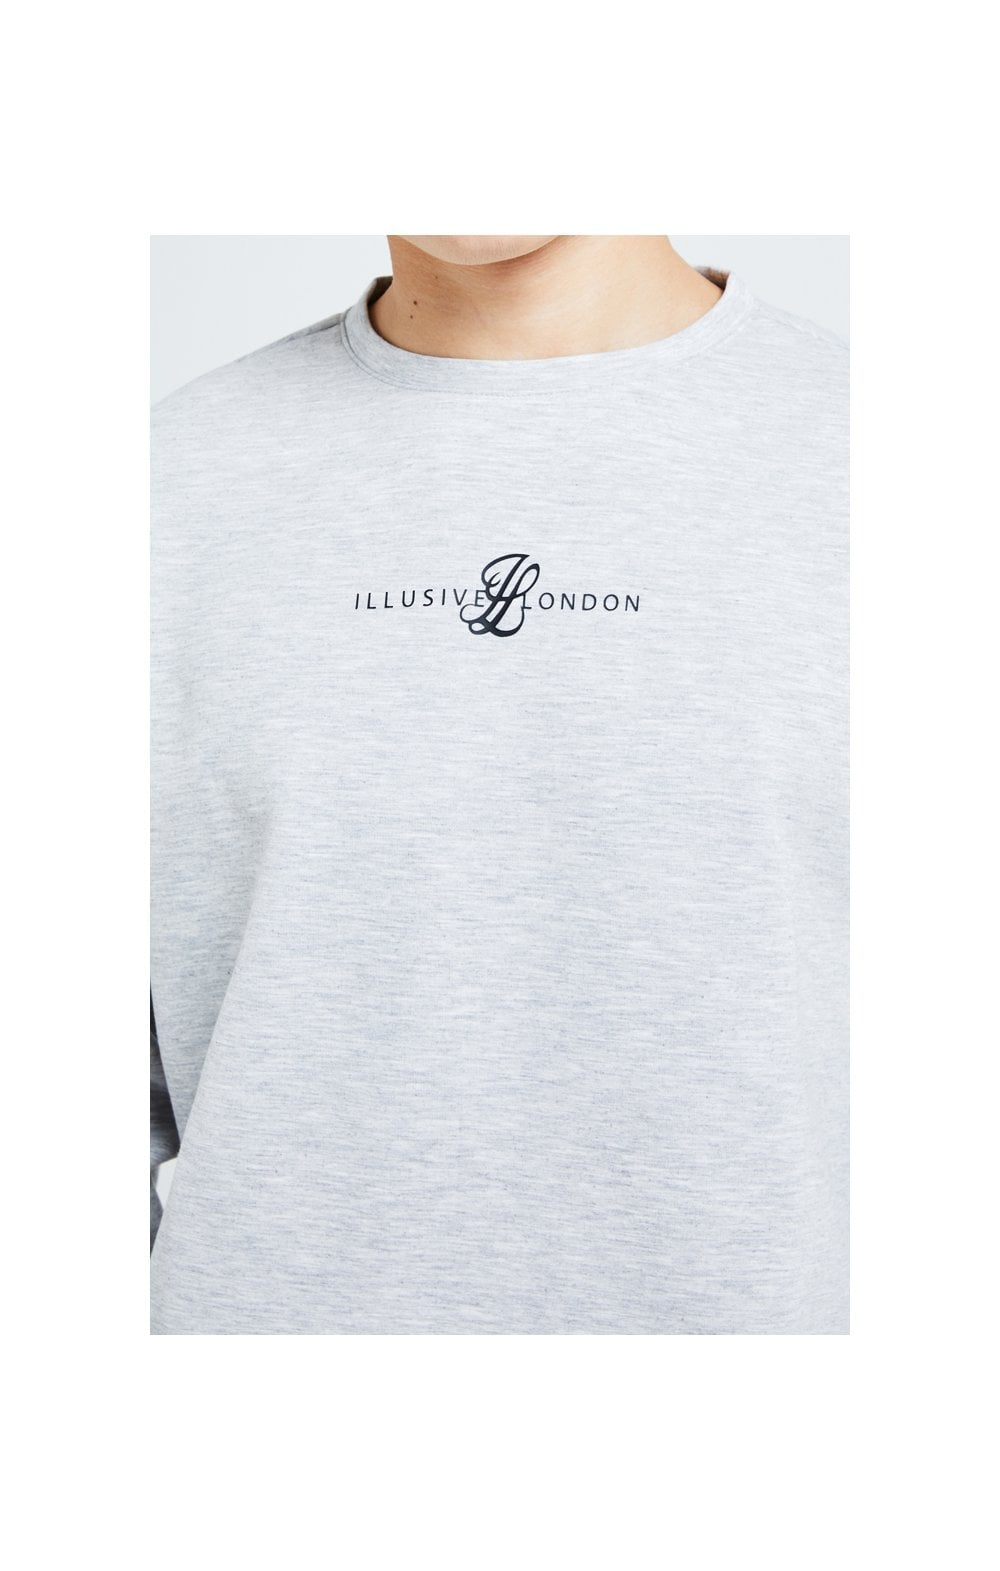 Illusive London Dual Crew Sweater - Grey (1)